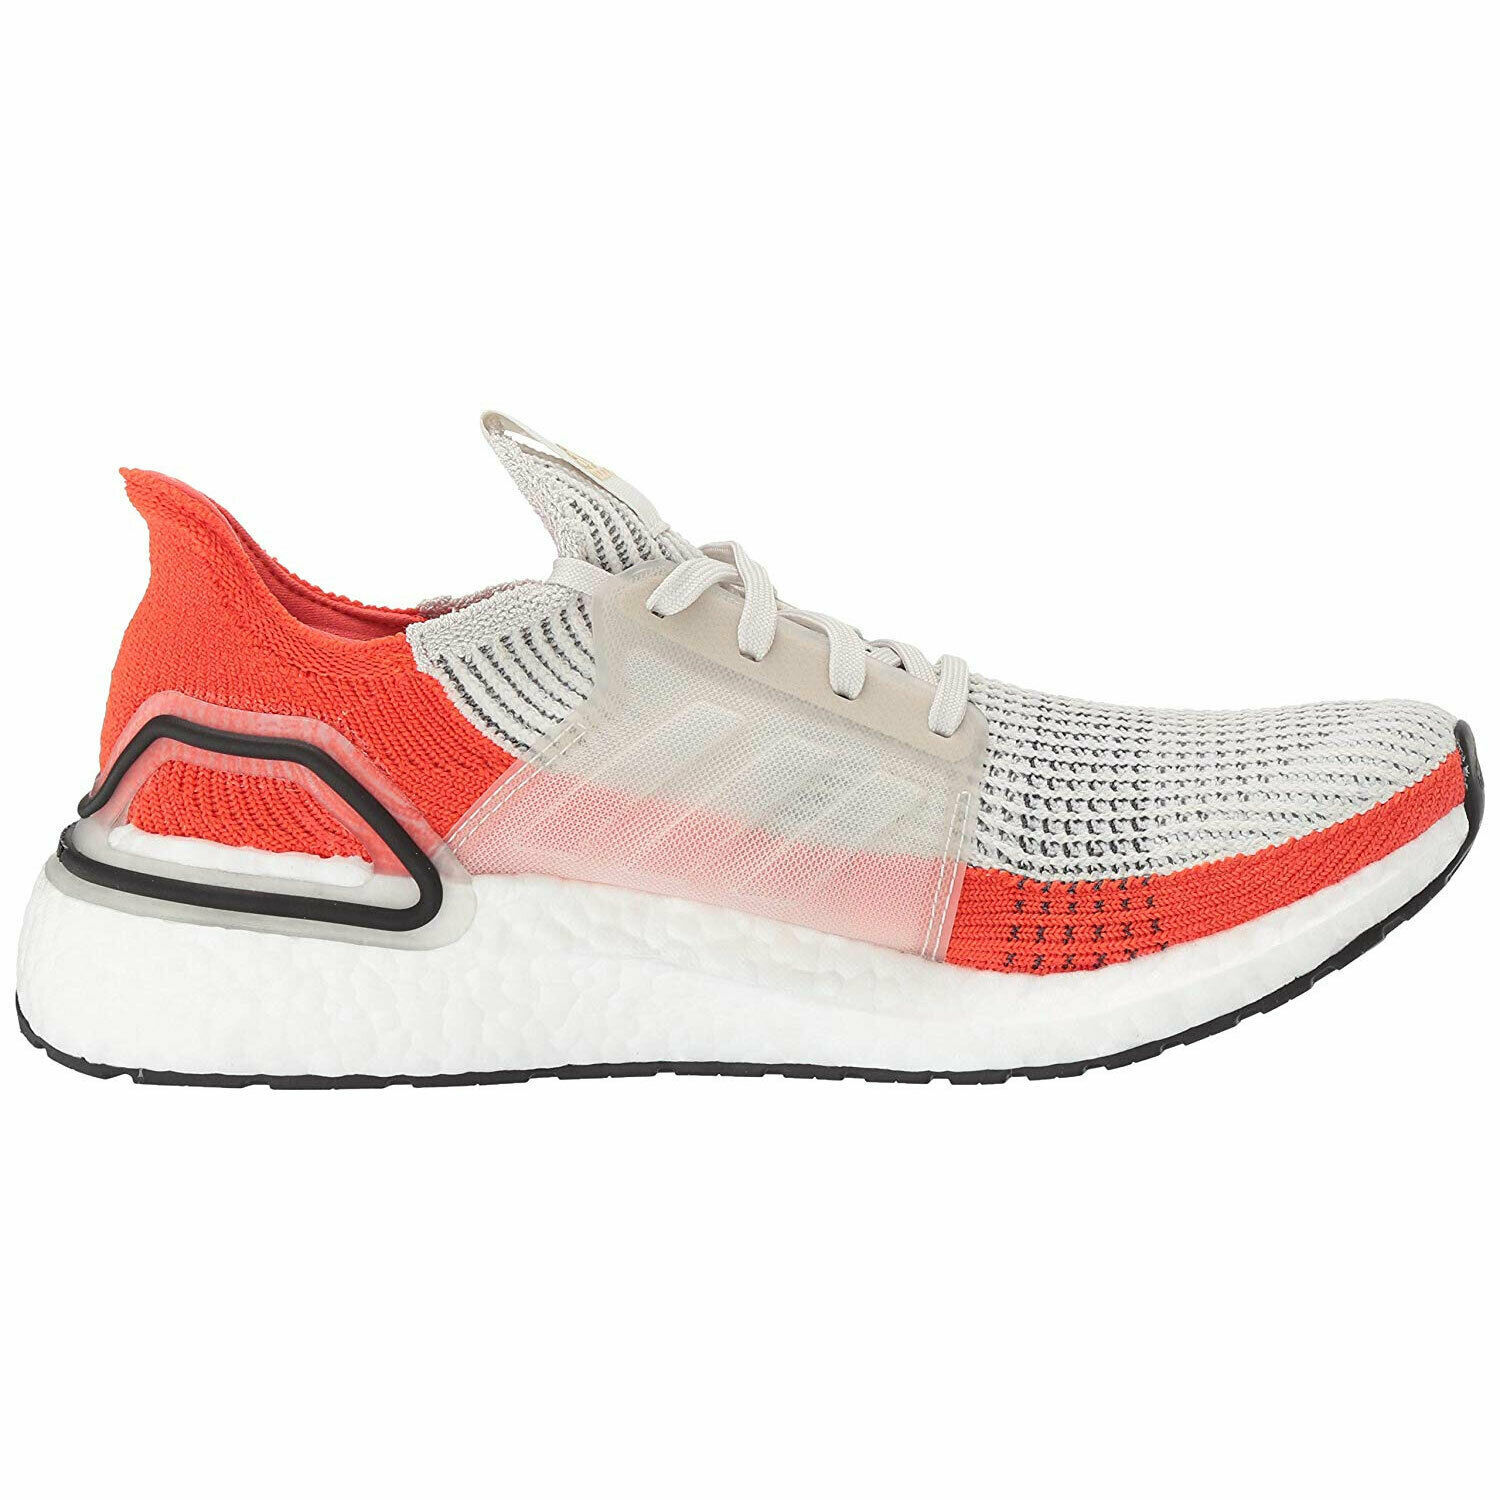 Primary image for Adidas Men's UltraBoost 19 White/Active Orange F35245